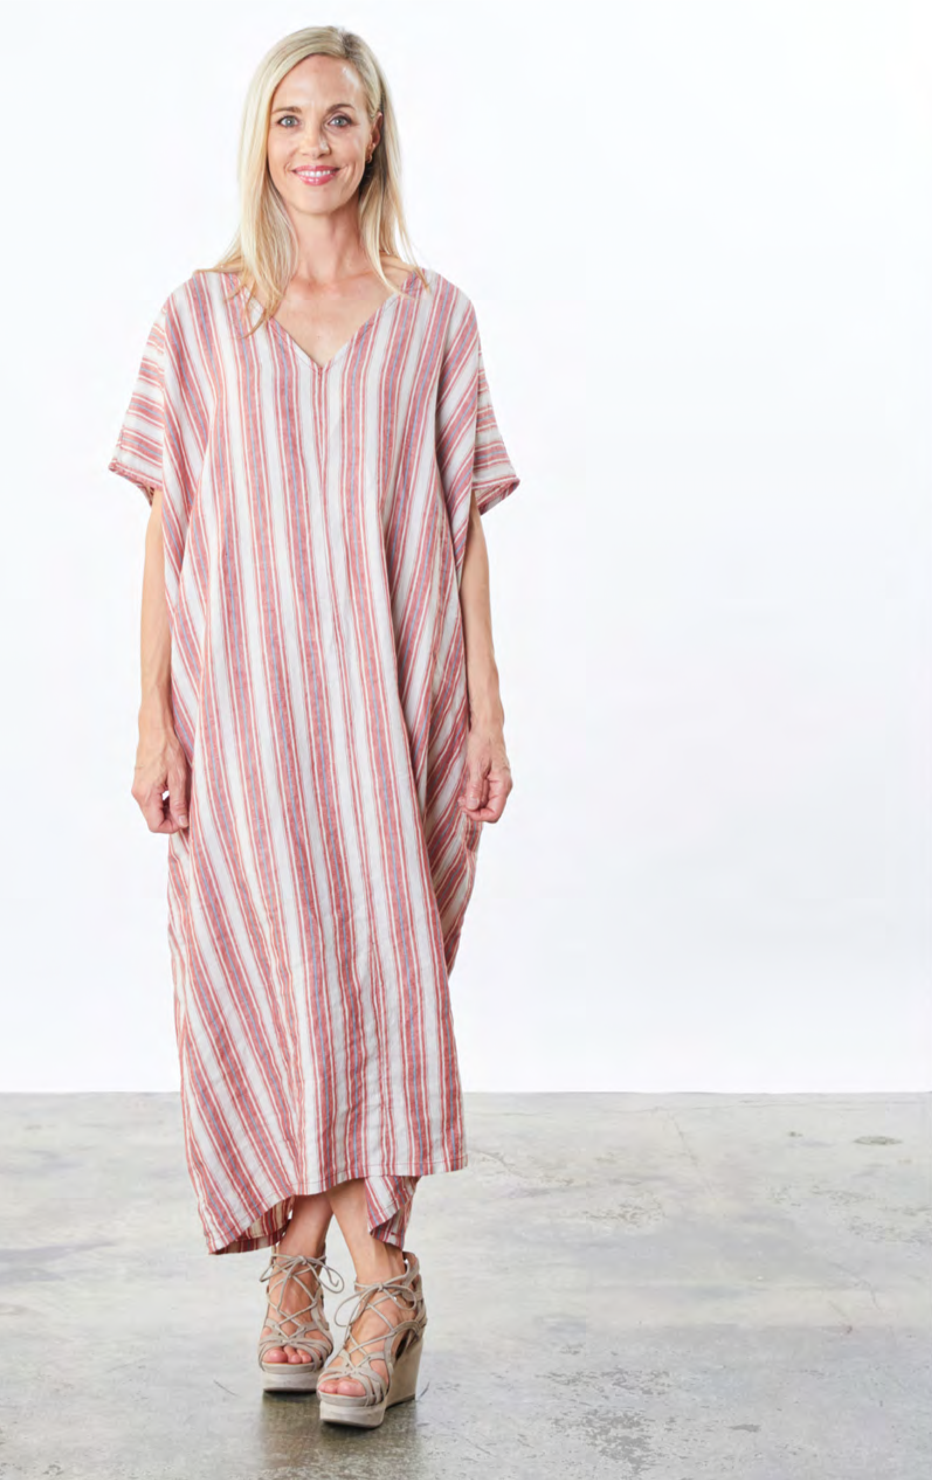 Bryn, Walker, usa, california, fashion, collection, brand, american, local, made, in, berkely, ladies, wear, ladieswear, ss2021, 2021, spring, summer, stripes, dress, v-neck, casual, easy